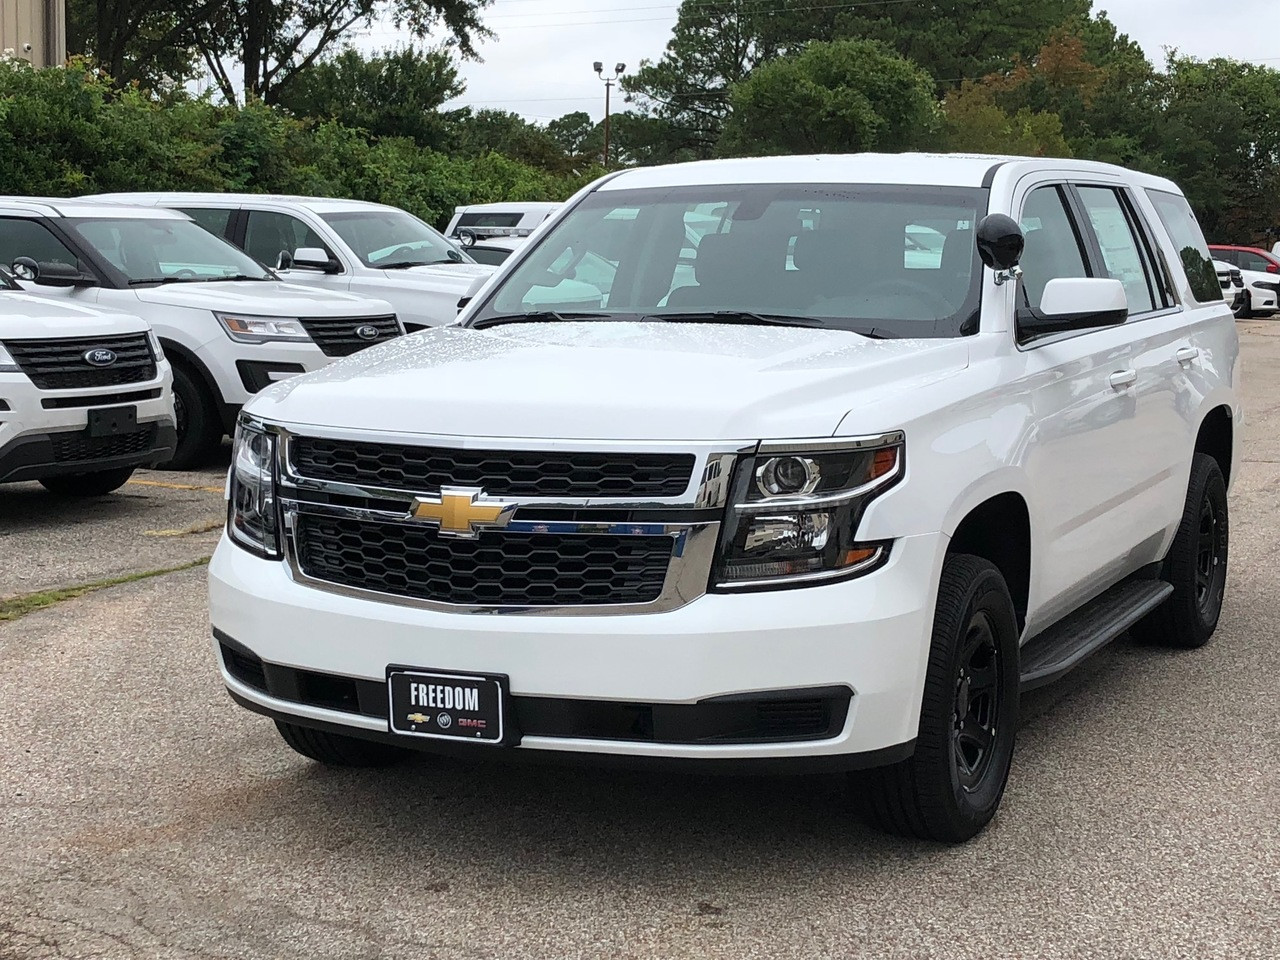 New 2019 Chevy Tahoe Police Package V8 2WD ready to be built as a Slick-Top Admin Package, choose any color LED Lights, + Delivery